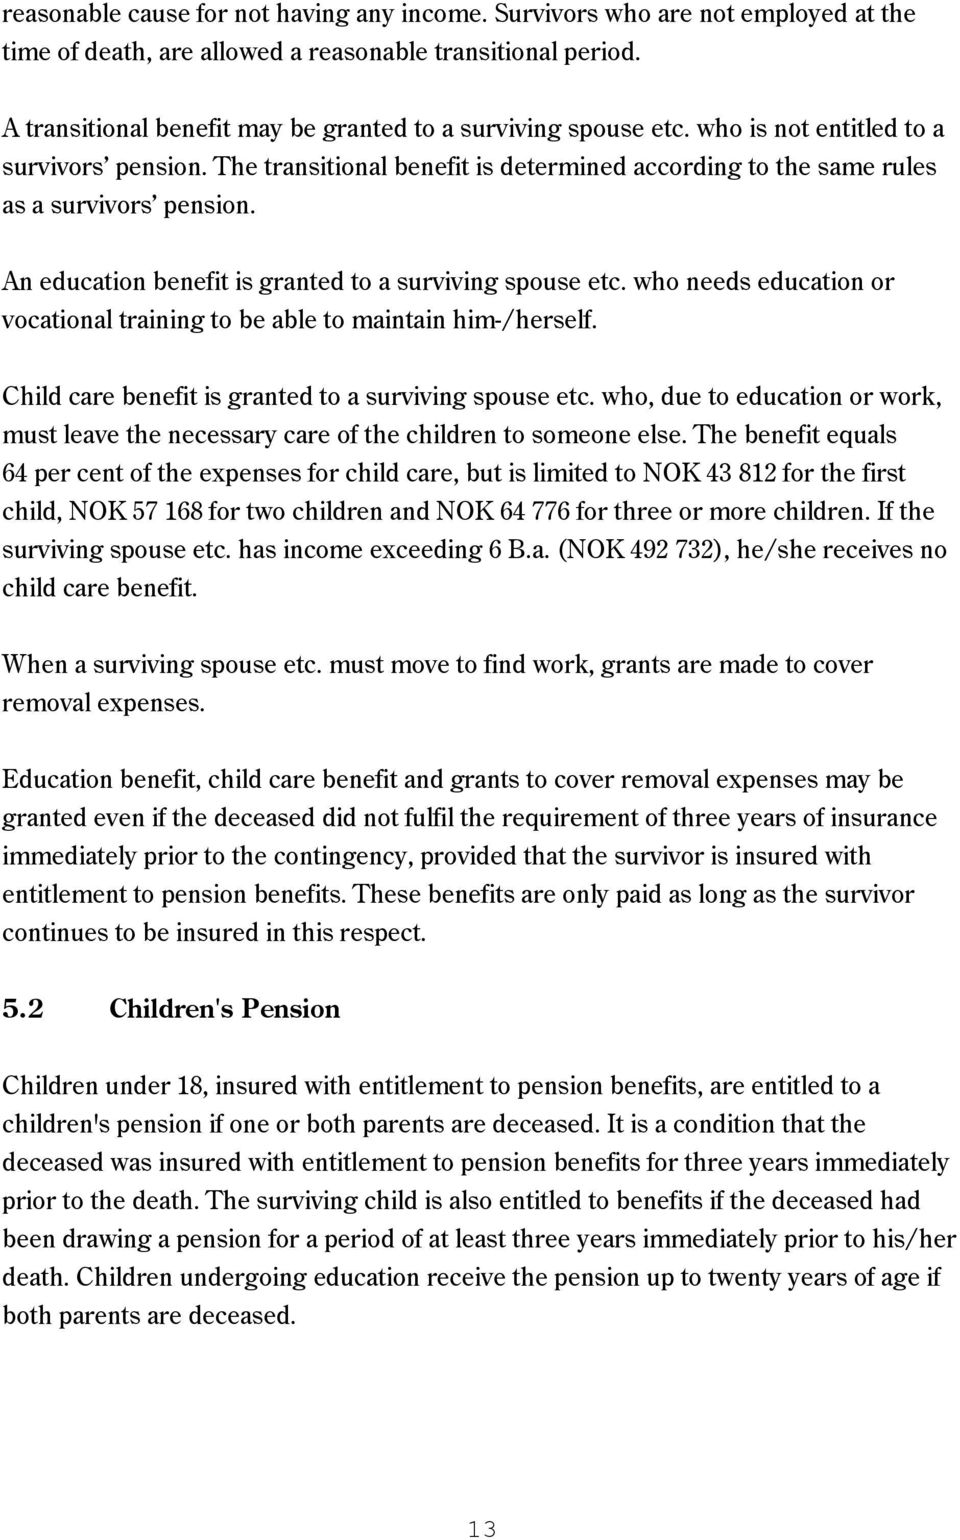 An education benefit is granted to a surviving spouse etc. who needs education or vocational training to be able to maintain him-/herself. Child care benefit is granted to a surviving spouse etc.